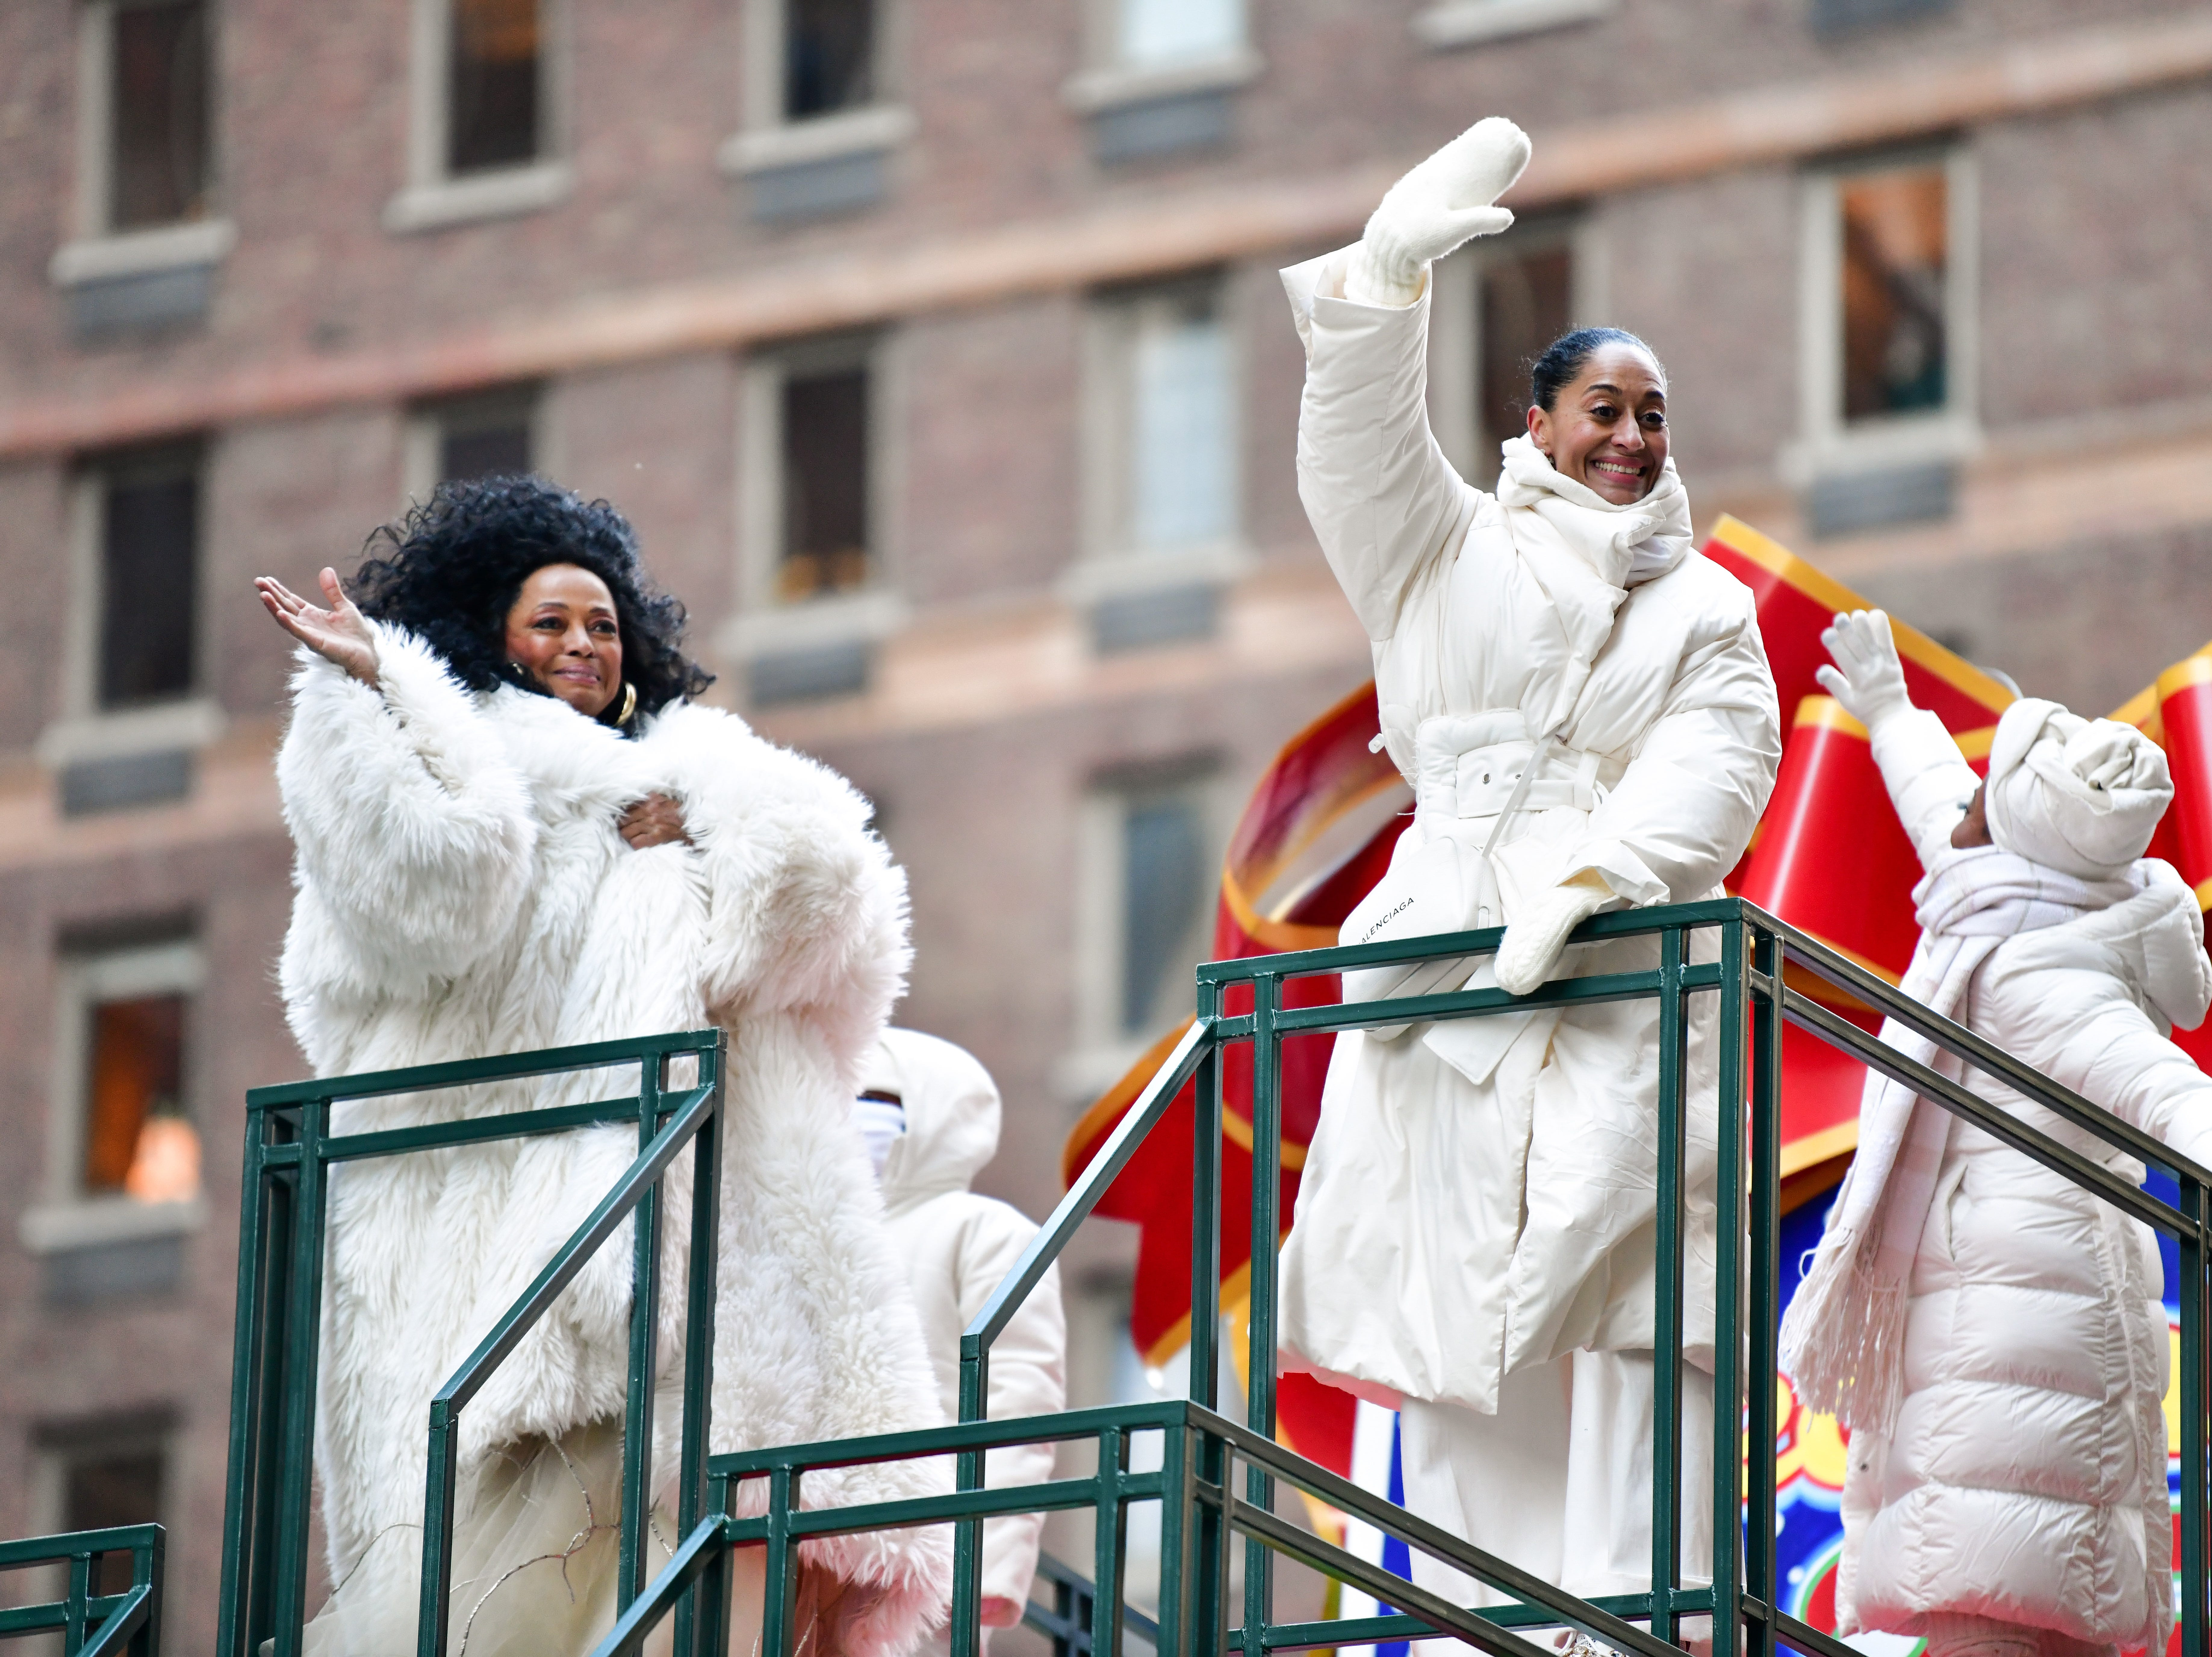 NEW YORK, NY - NOVEMBER 22:  Diana Ross and Tracey Ross attend the 92nd Annual Macy's Thanksgiving Day Parade on November 22, 2018 in New York City.  (Photo by James Devaney/WireImage,) ORG XMIT: 775240086 ORIG FILE ID: 1064359368